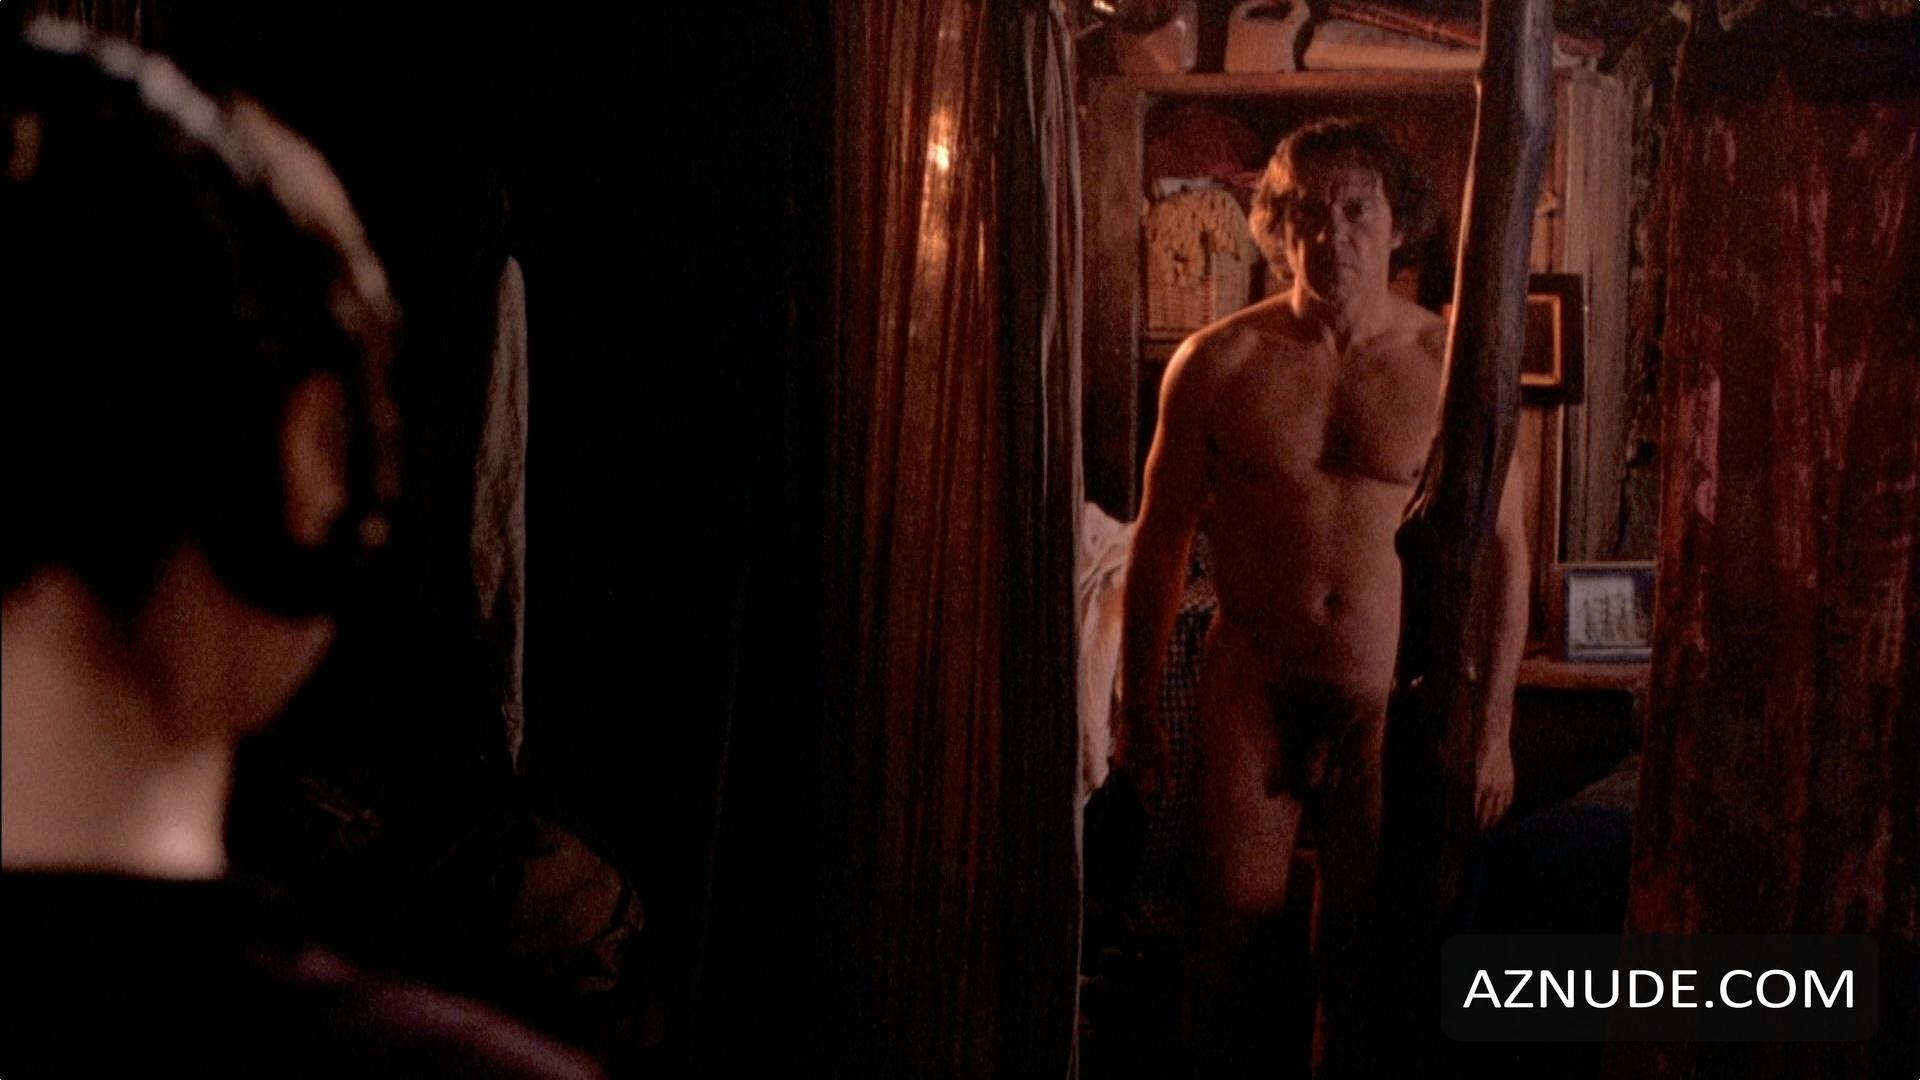 Harvey keitel nude scene movie